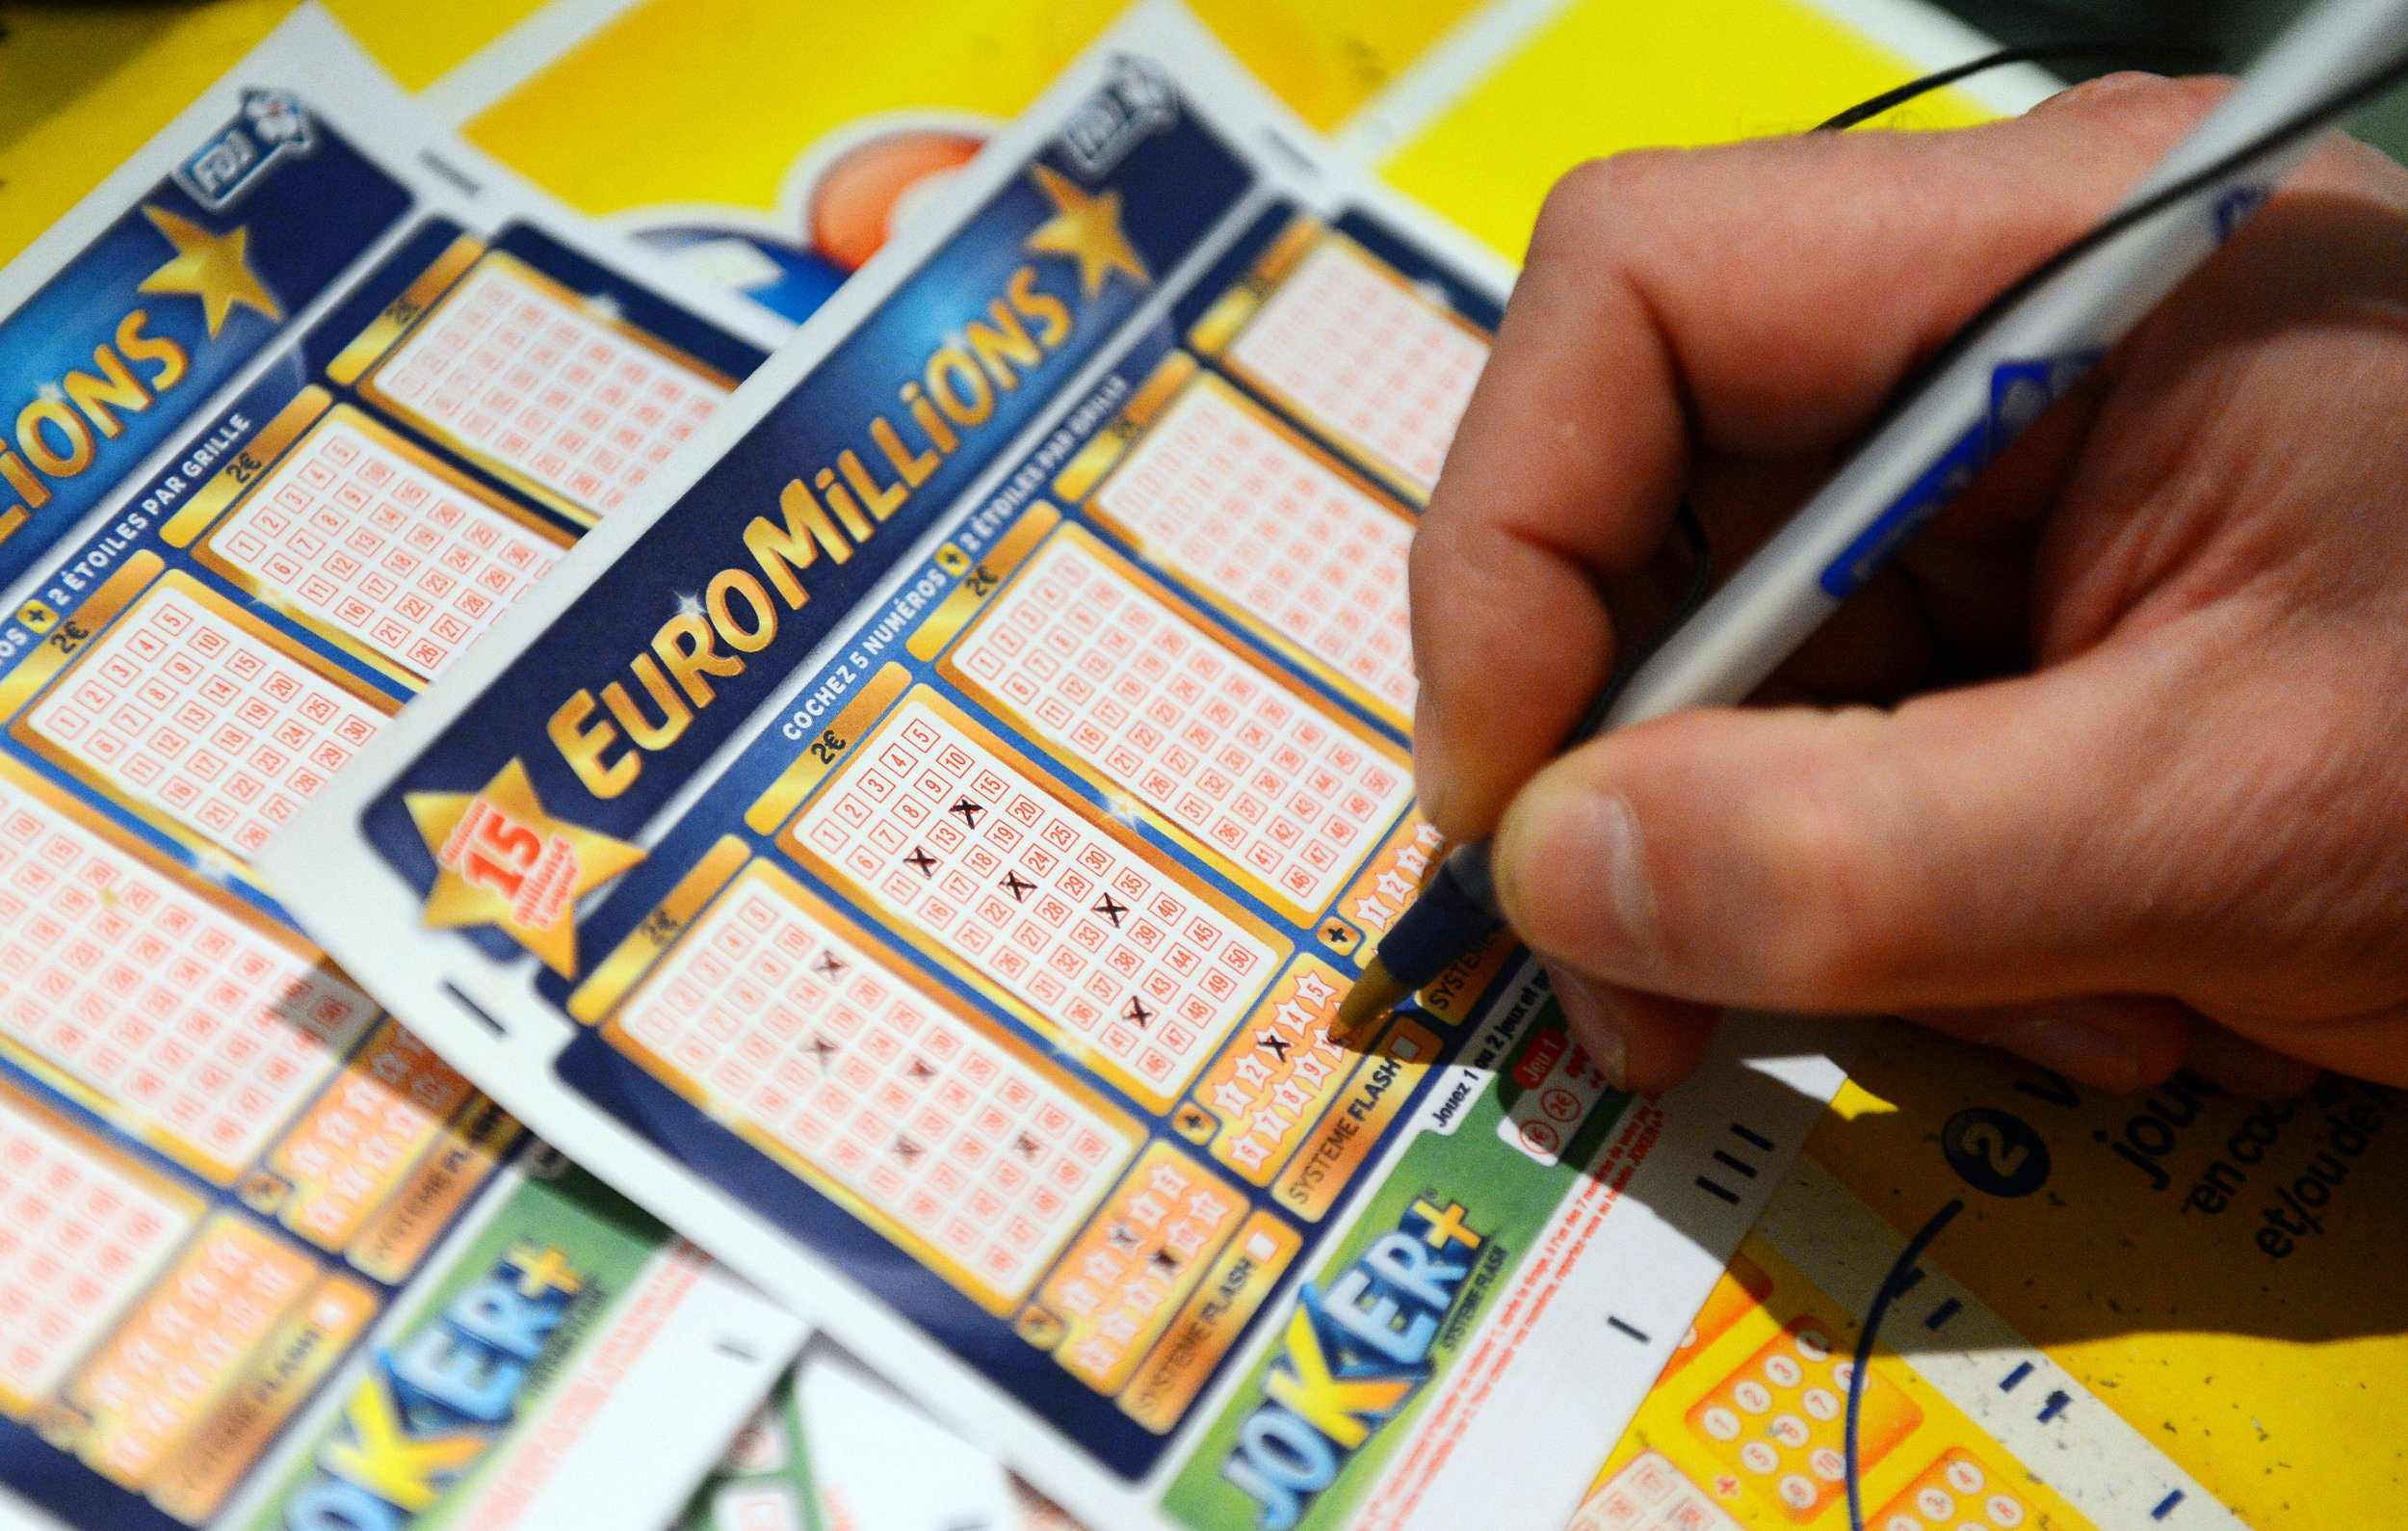 The next Euro Millions jackpot is £131 million